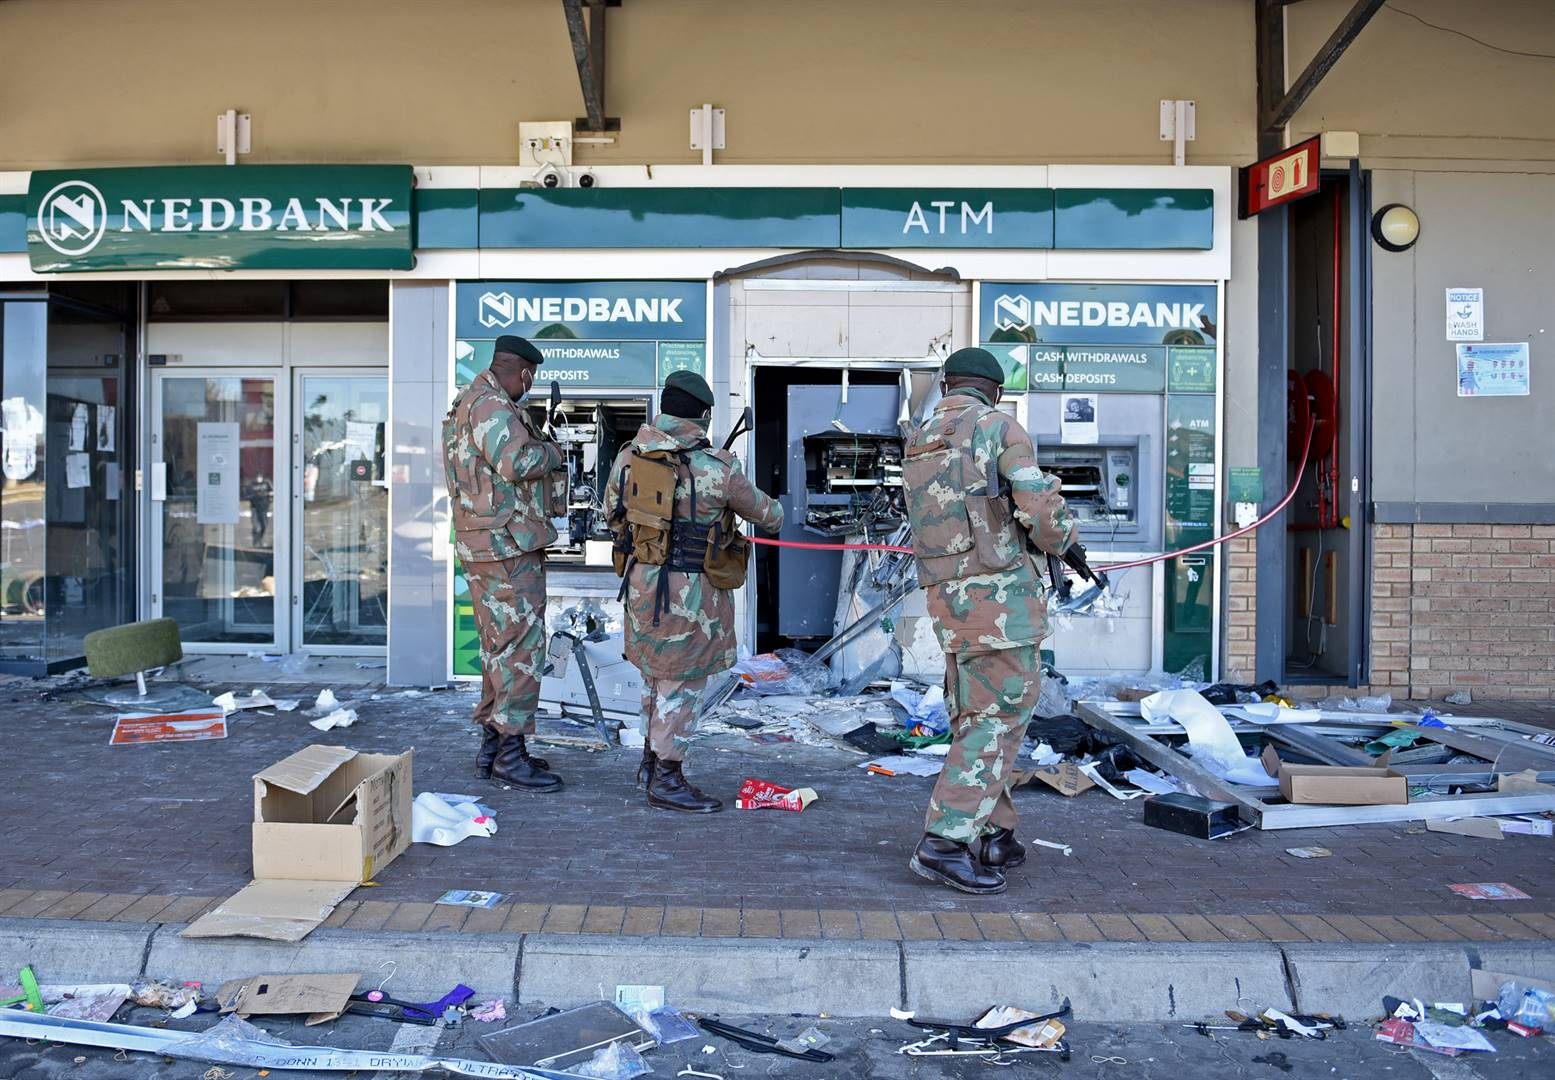 ATM machines were pulled out of the wall by looters at Diepkloof Square in Soweto.